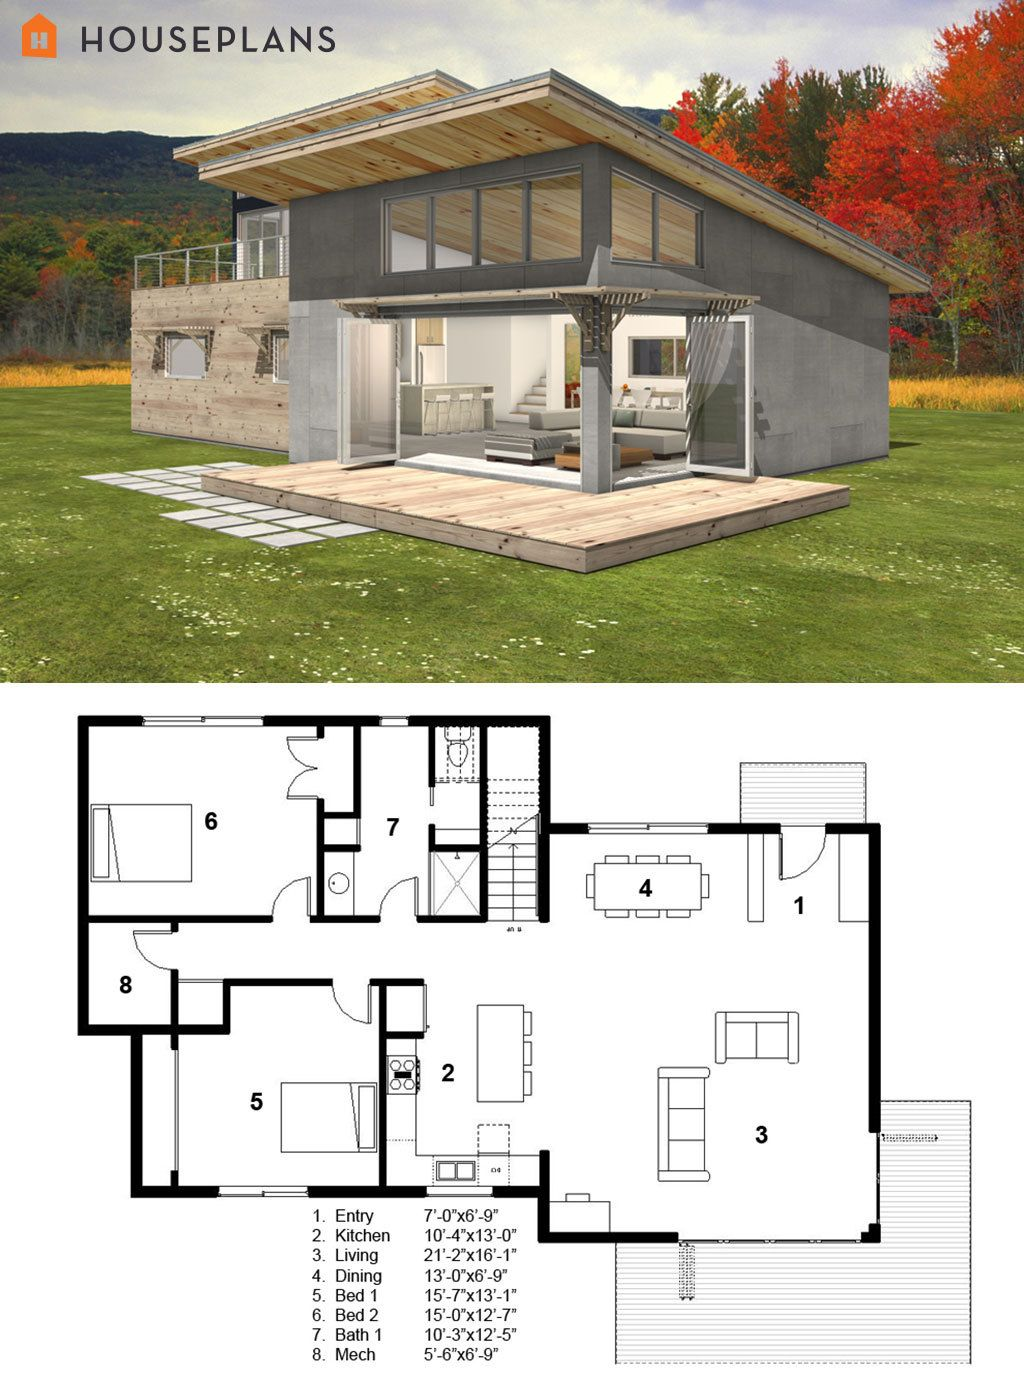 architecture small modern cabin house plan - Tiny Tower 3 Bedroom Home Design